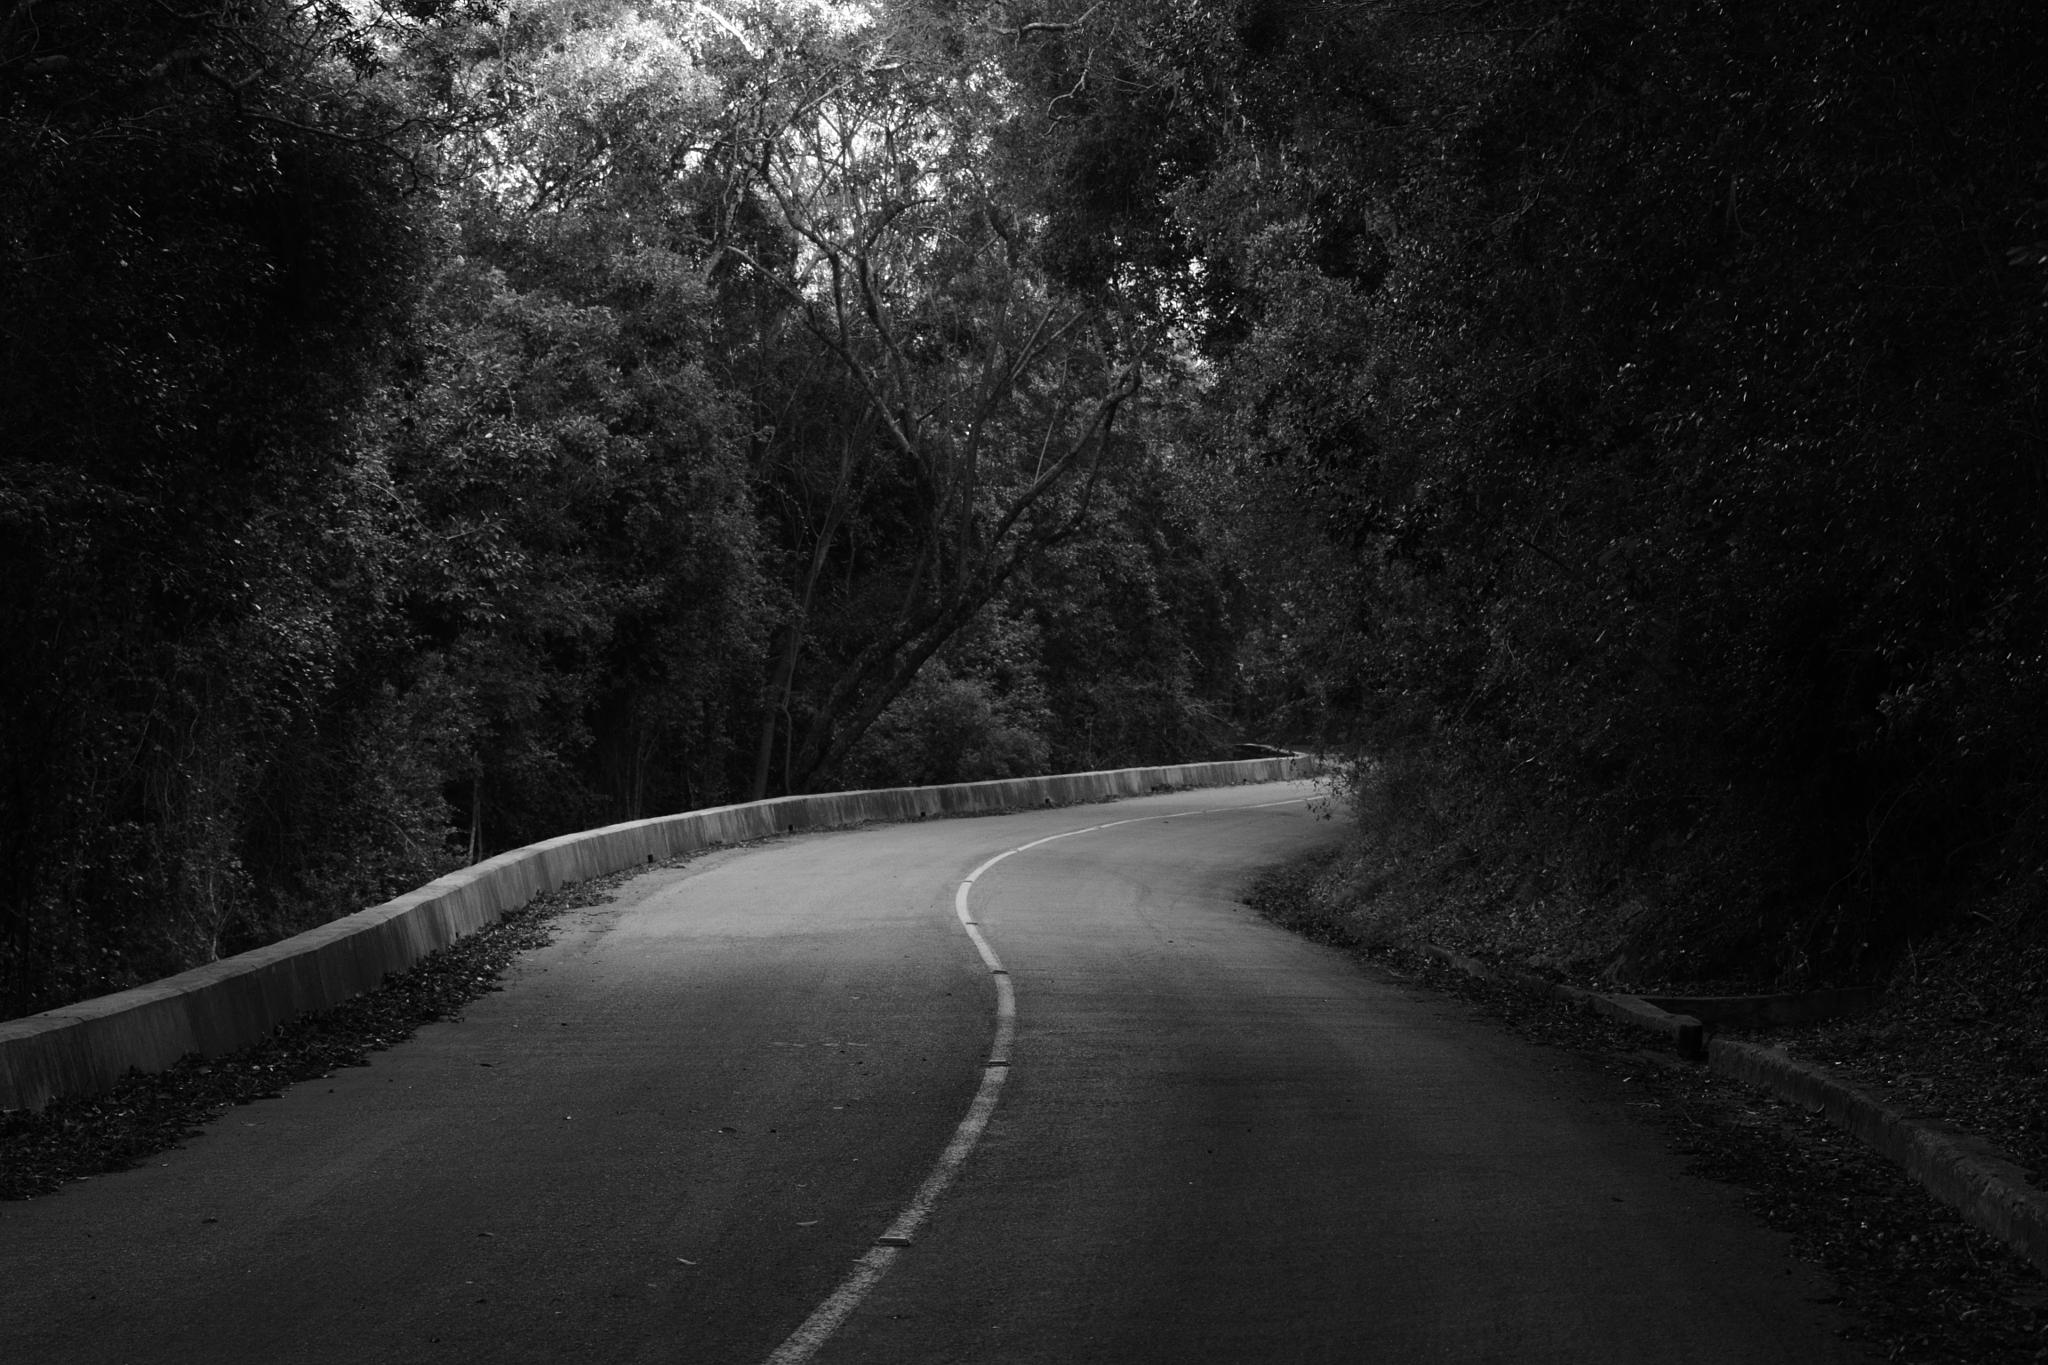 Road to Nowhere by MichaelaTaylor